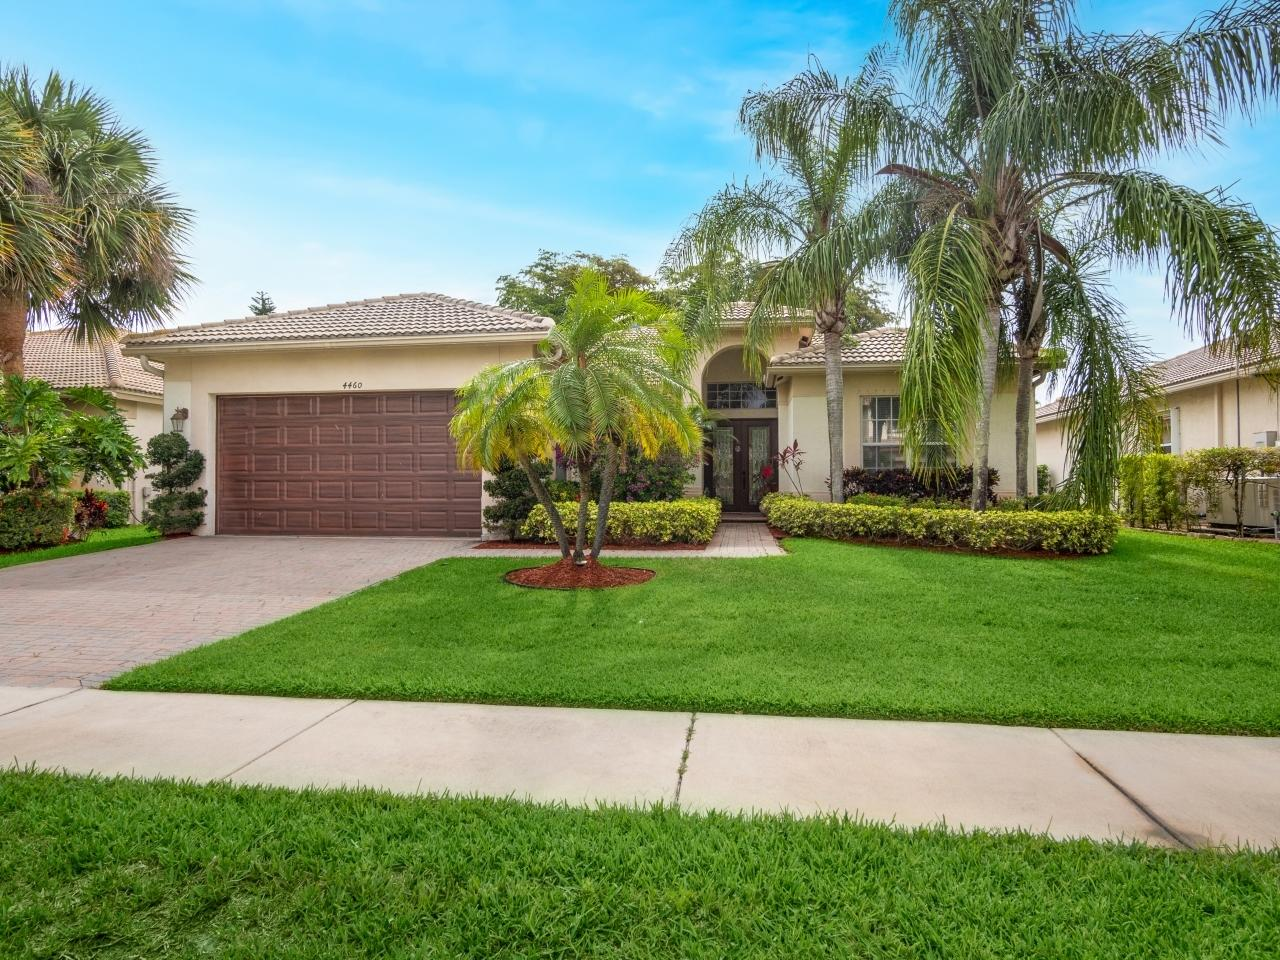 4460  Mariners Cove Drive  For Sale 10719499, FL